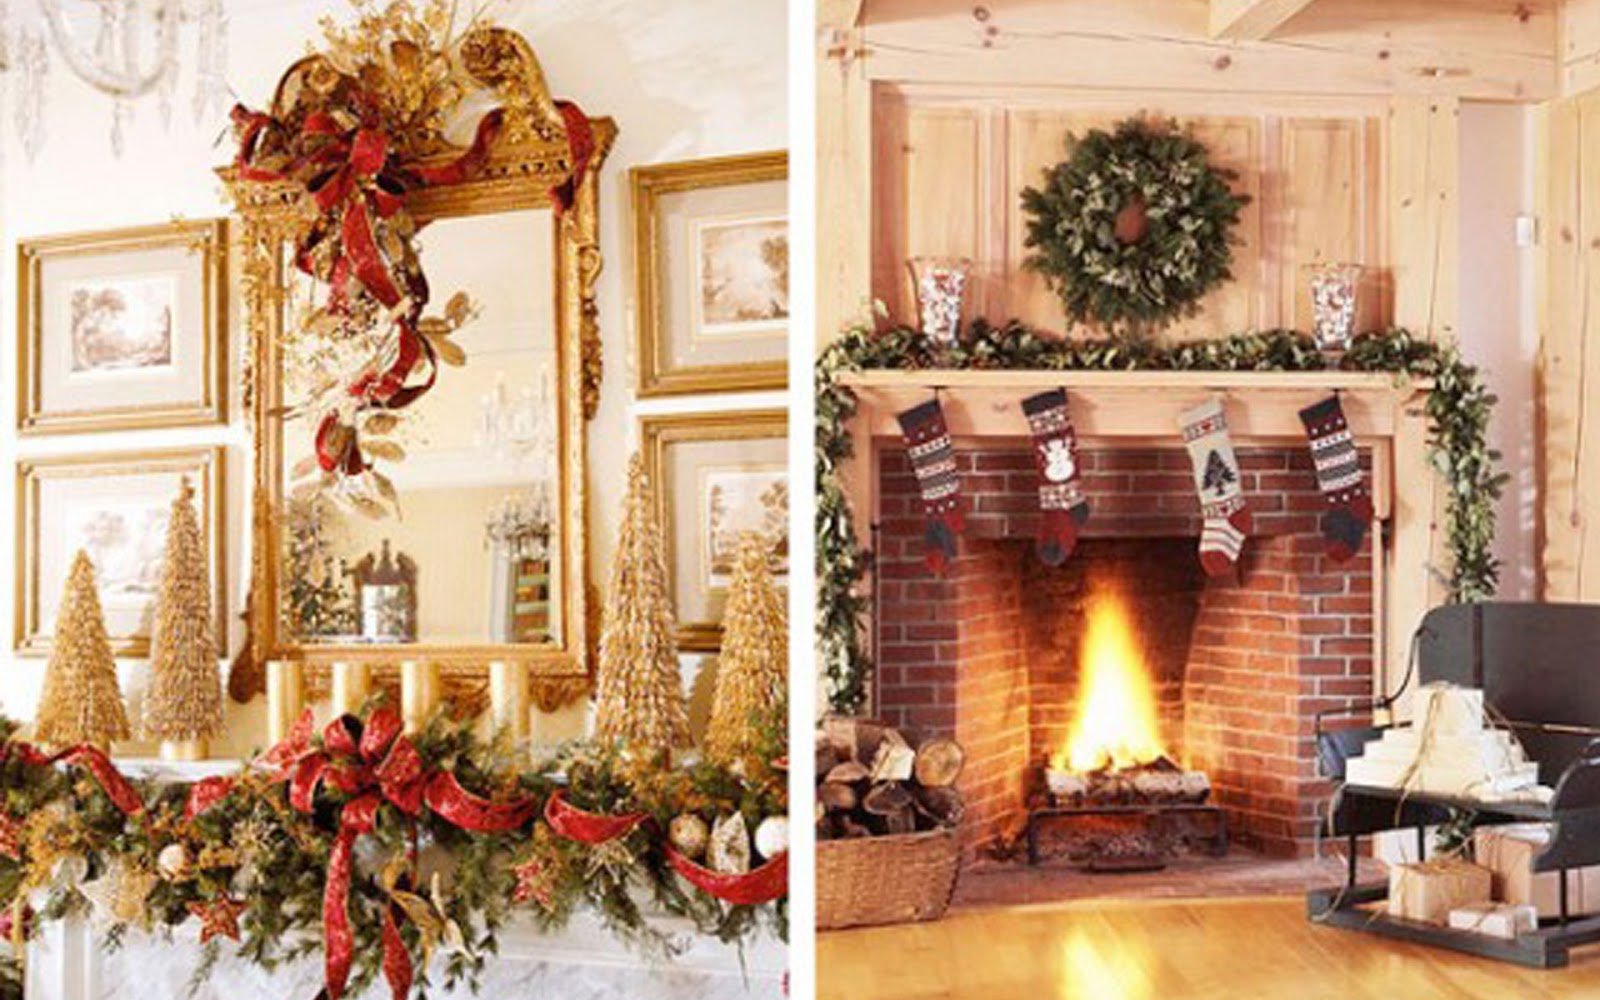 Xmas Home Decoration: Decorate Your Mantel Or Chimney For Christmas : Let's